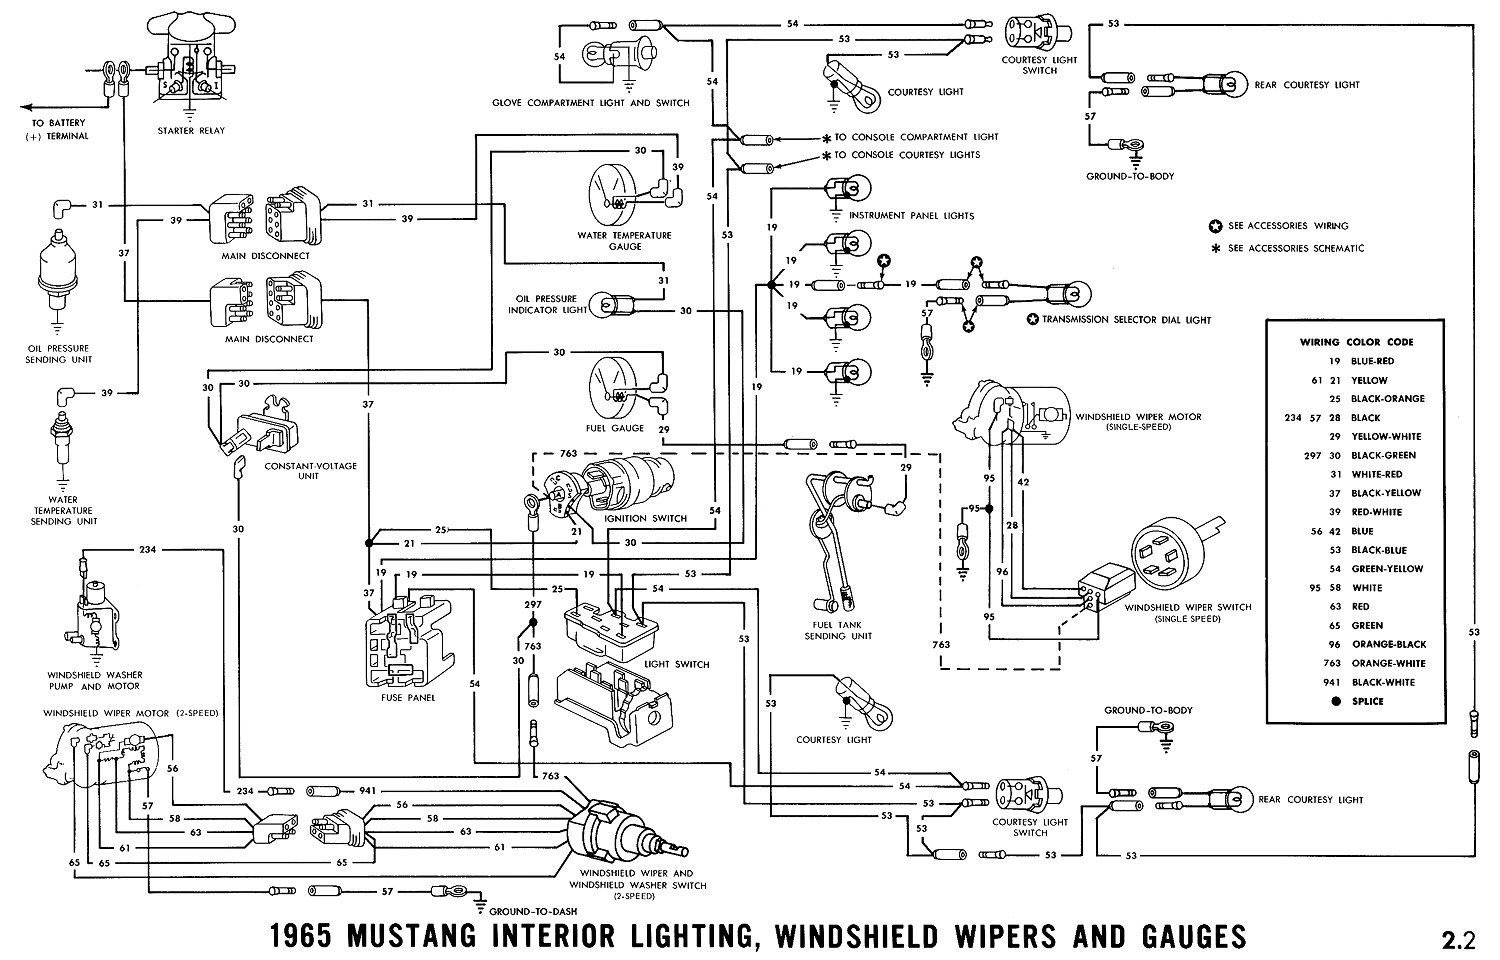 1965g 1965 mustang wiring diagrams average joe restoration 1965 mustang ignition switch wiring diagram at crackthecode.co